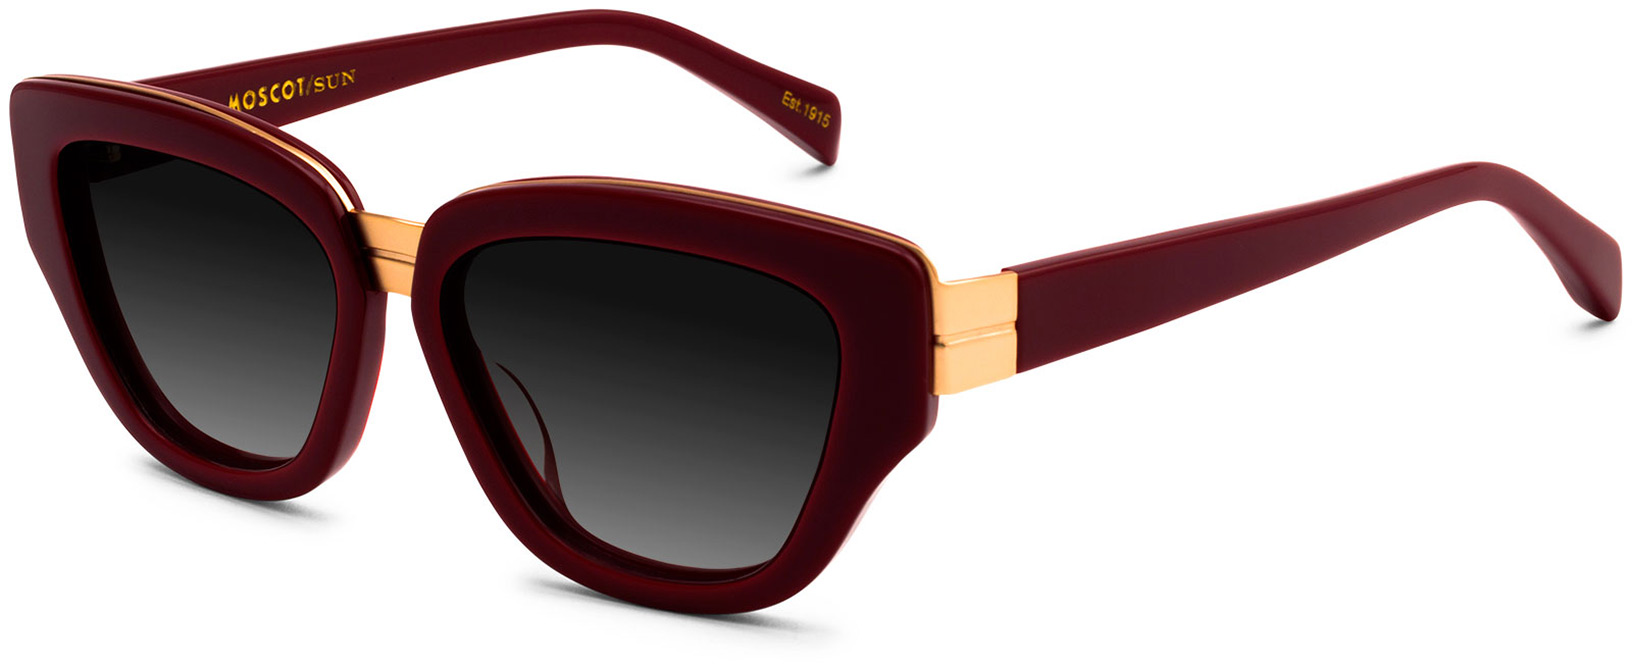 moscot-2013-sun-collection-sunglasses-56